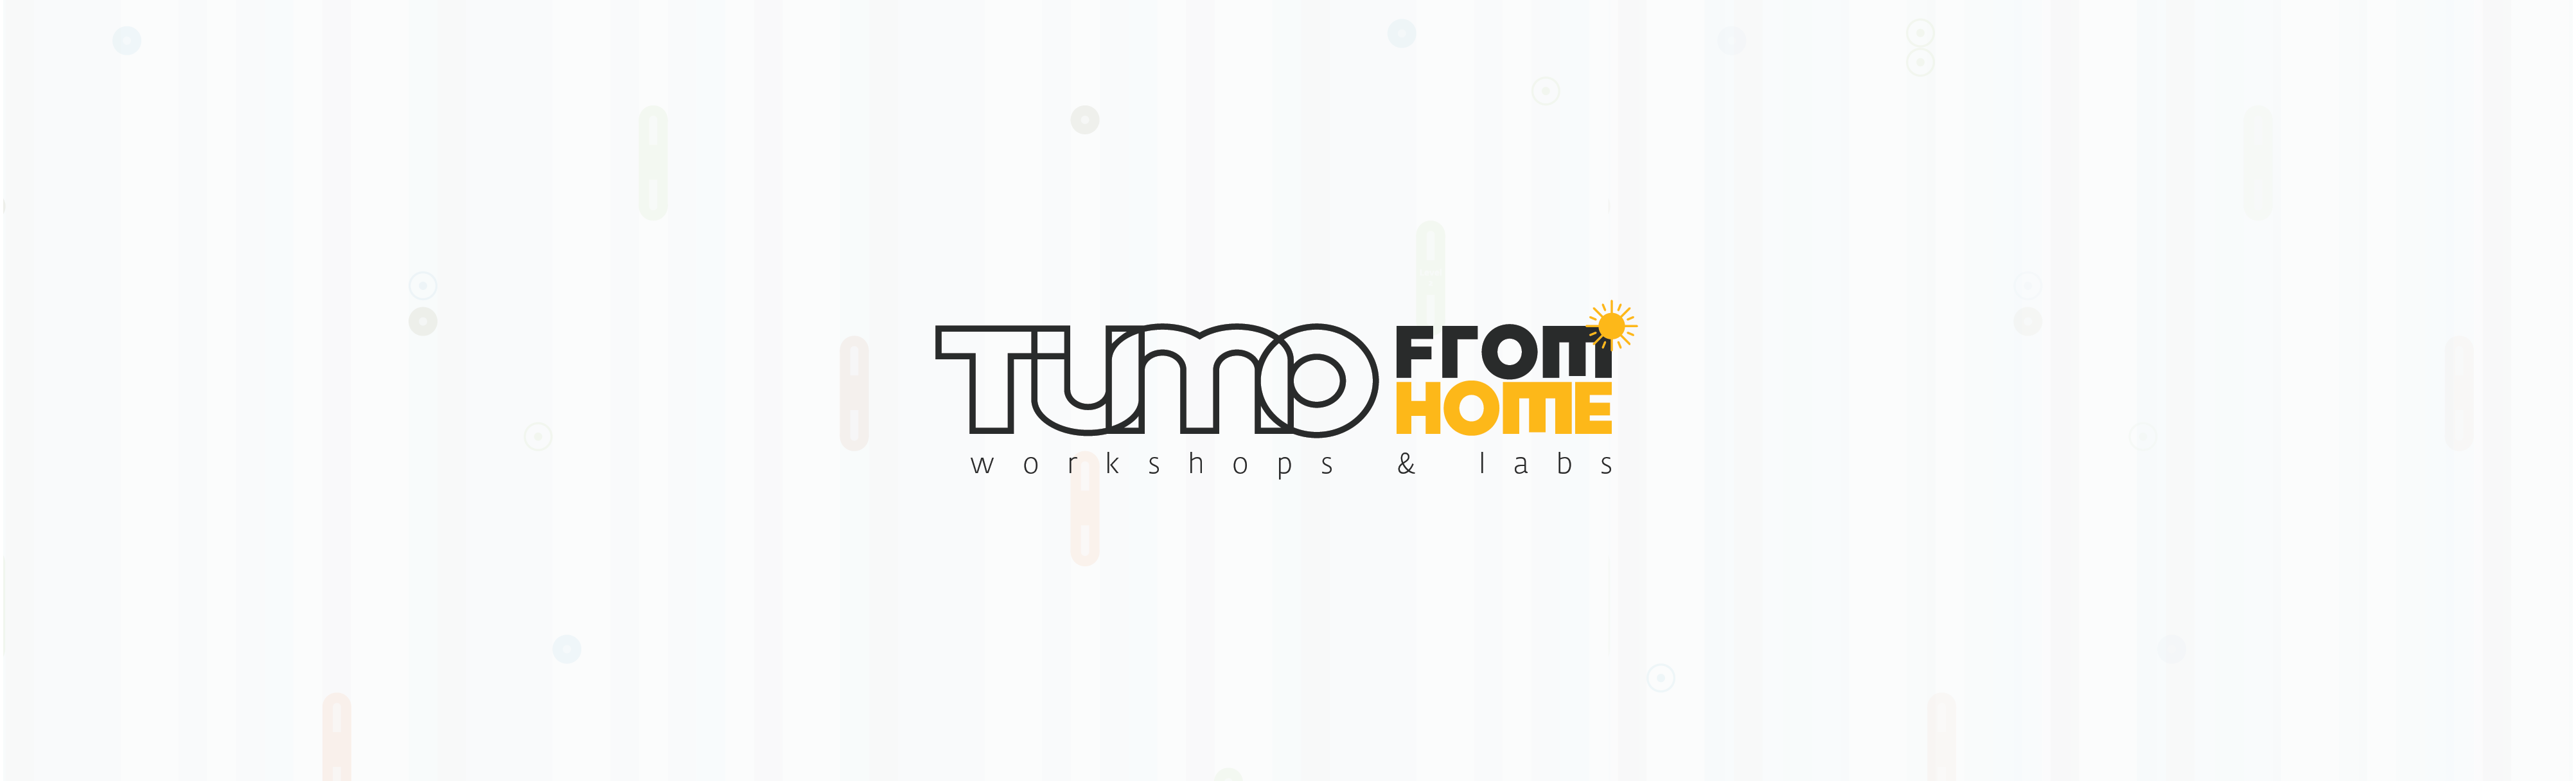 banner main 02 - Summer From Home